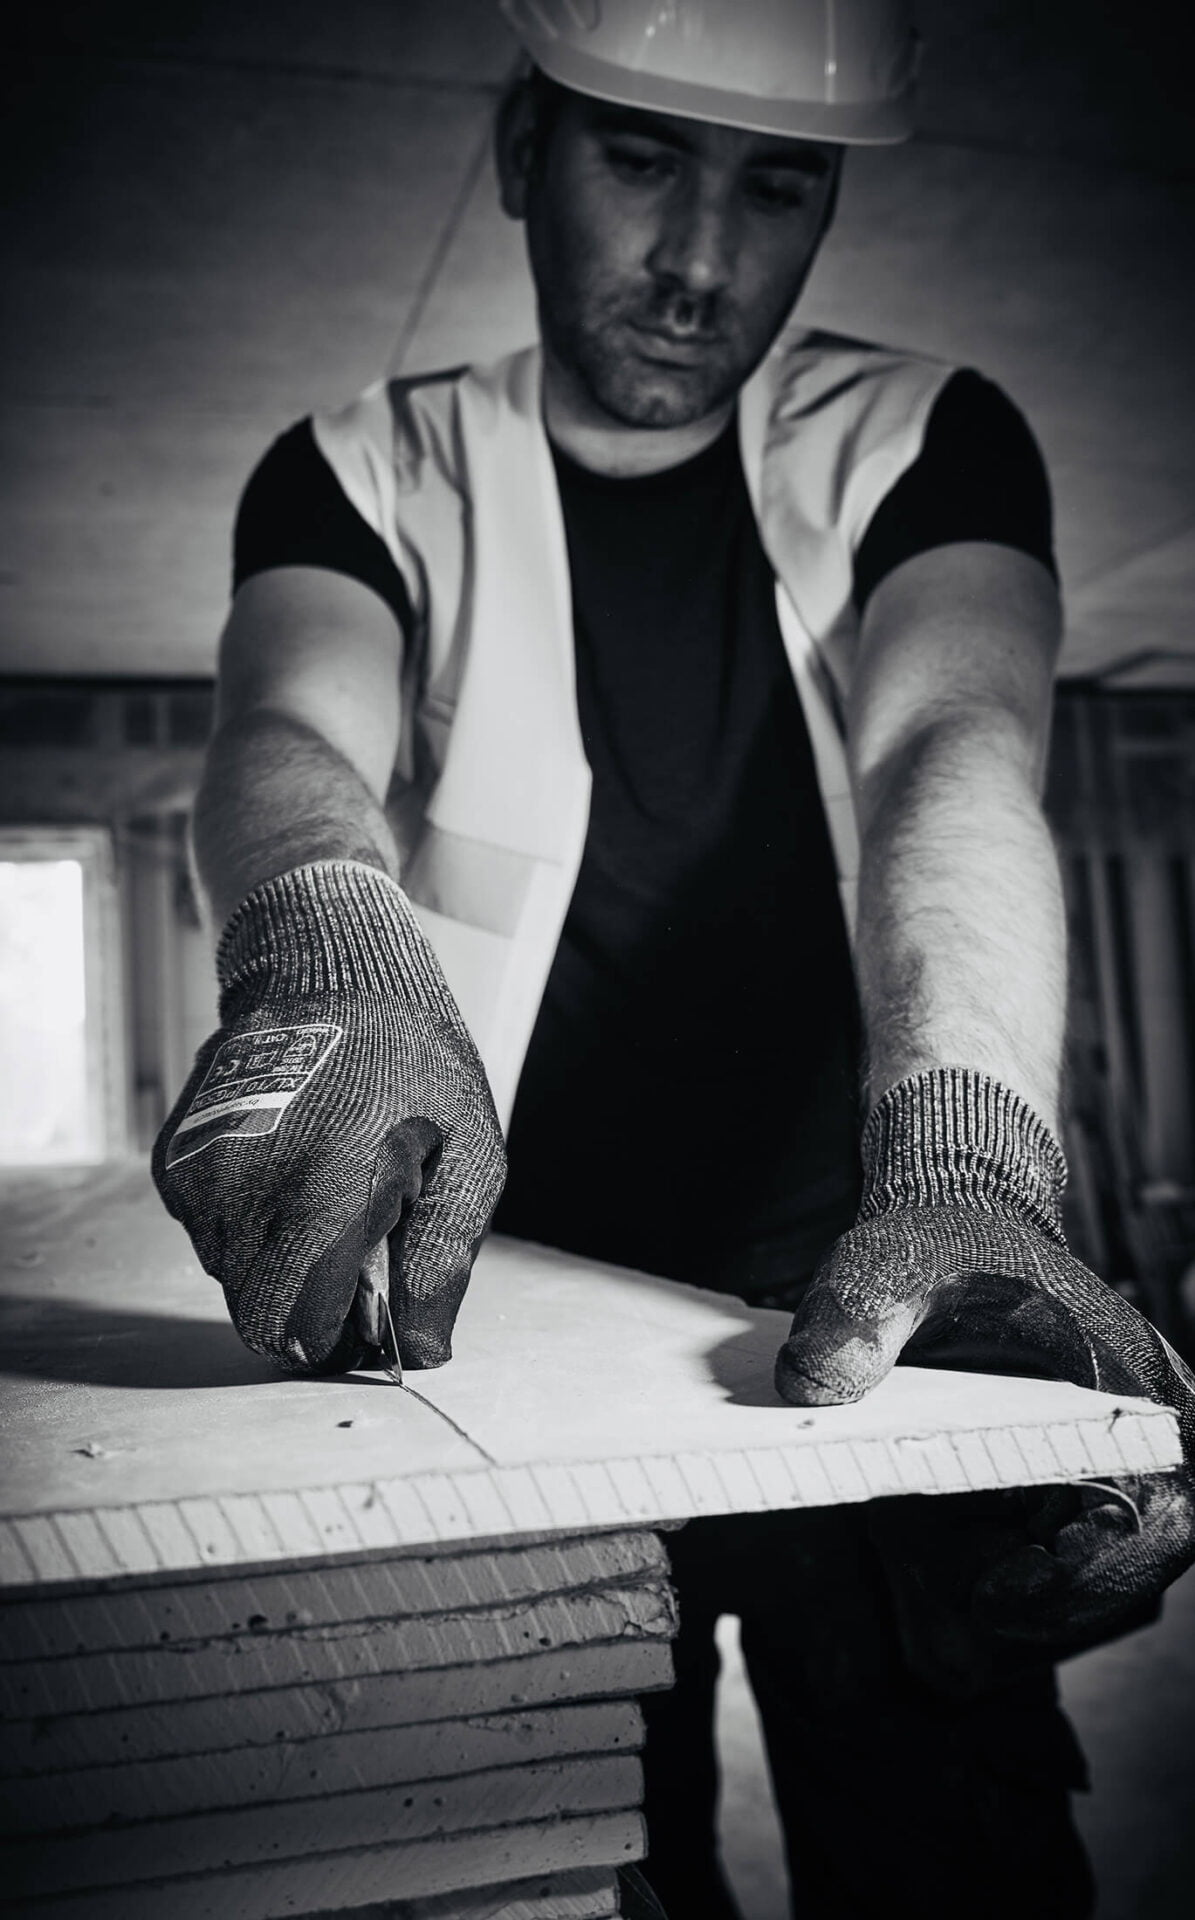 Construction People Portrait Photography